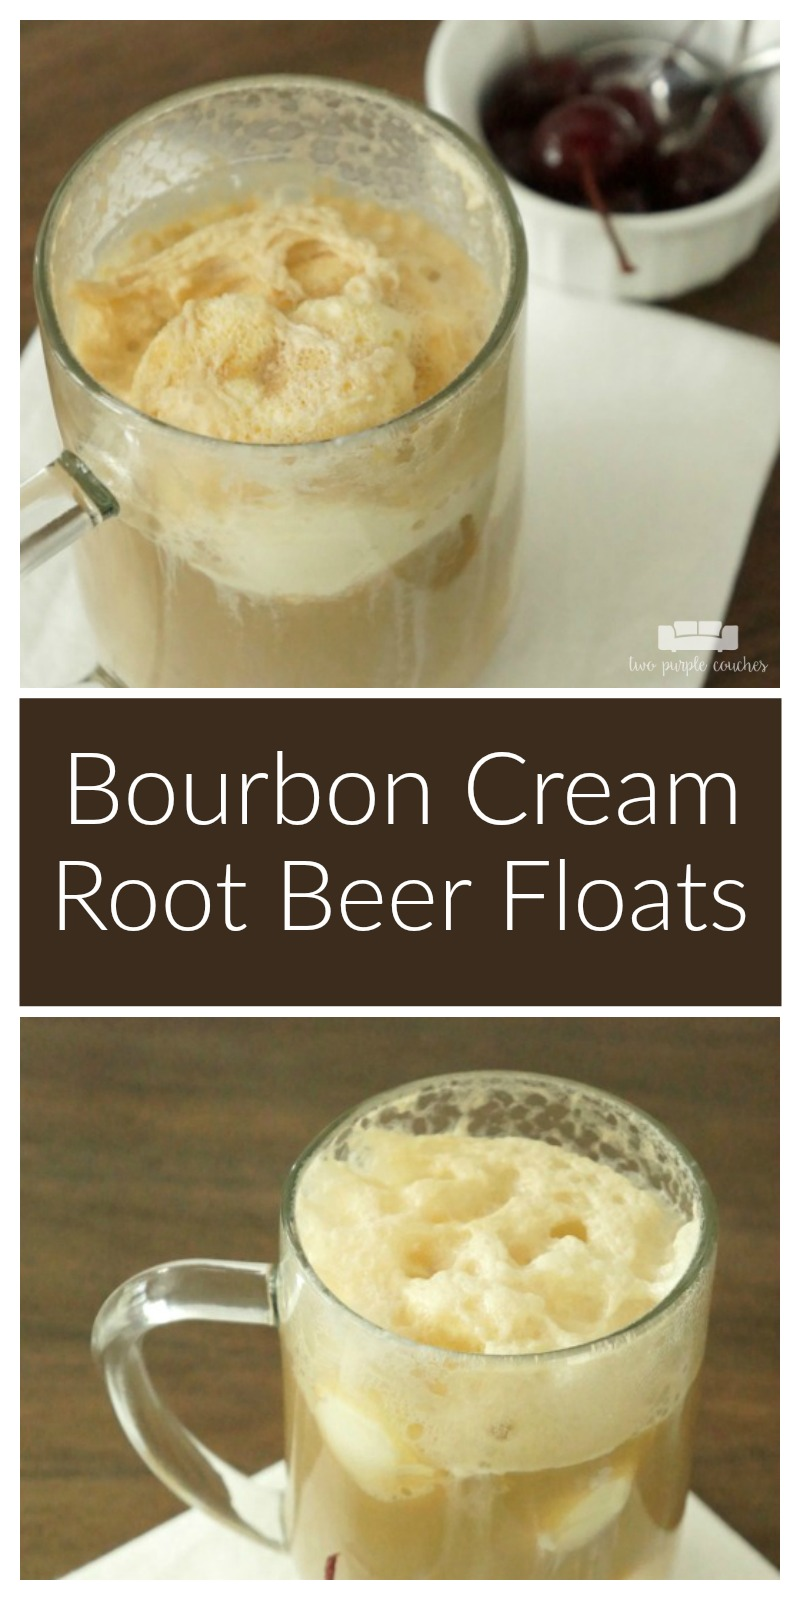 Beat the heat this summer with this boozy Bourbon Cream Root Beer Float recipe. A creamy and delicious adult spin on this childhood favorite treat!